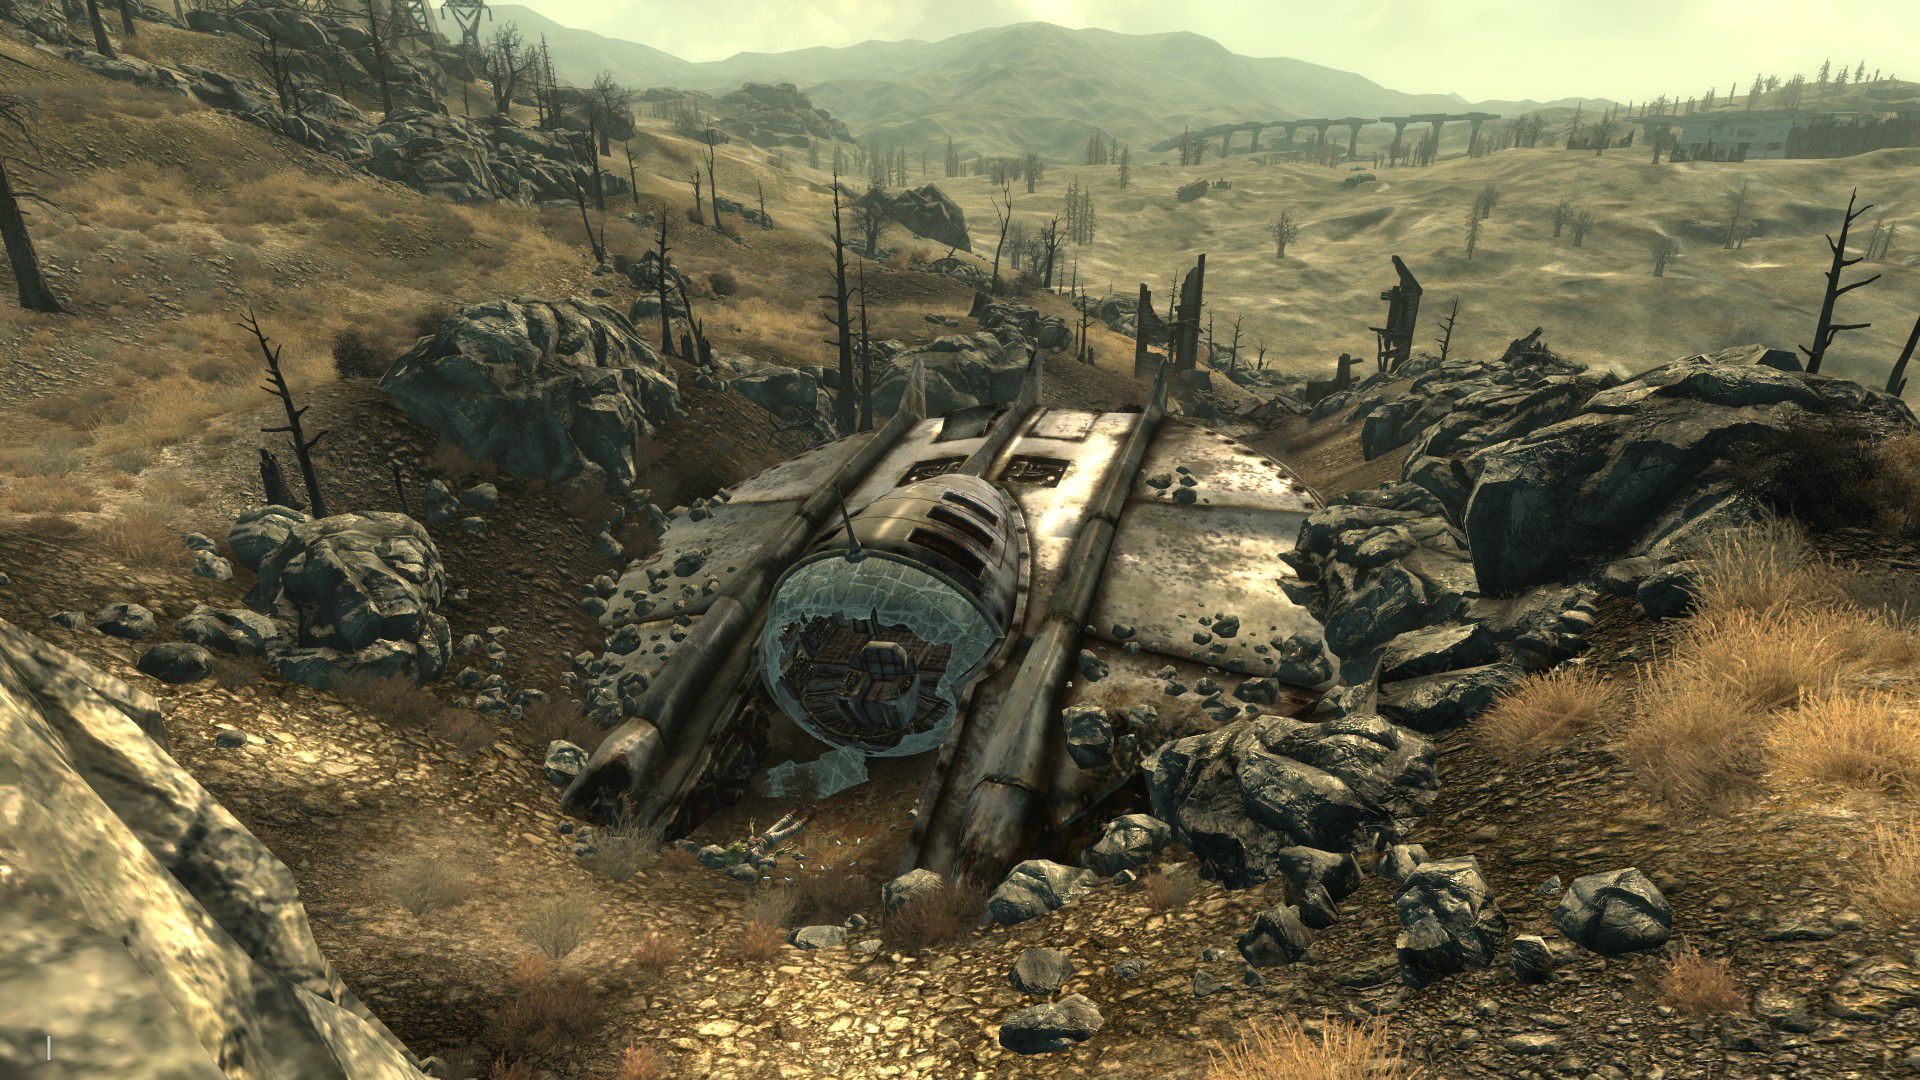 Alien crash site | Fallout Wiki | FANDOM powered by Wikia